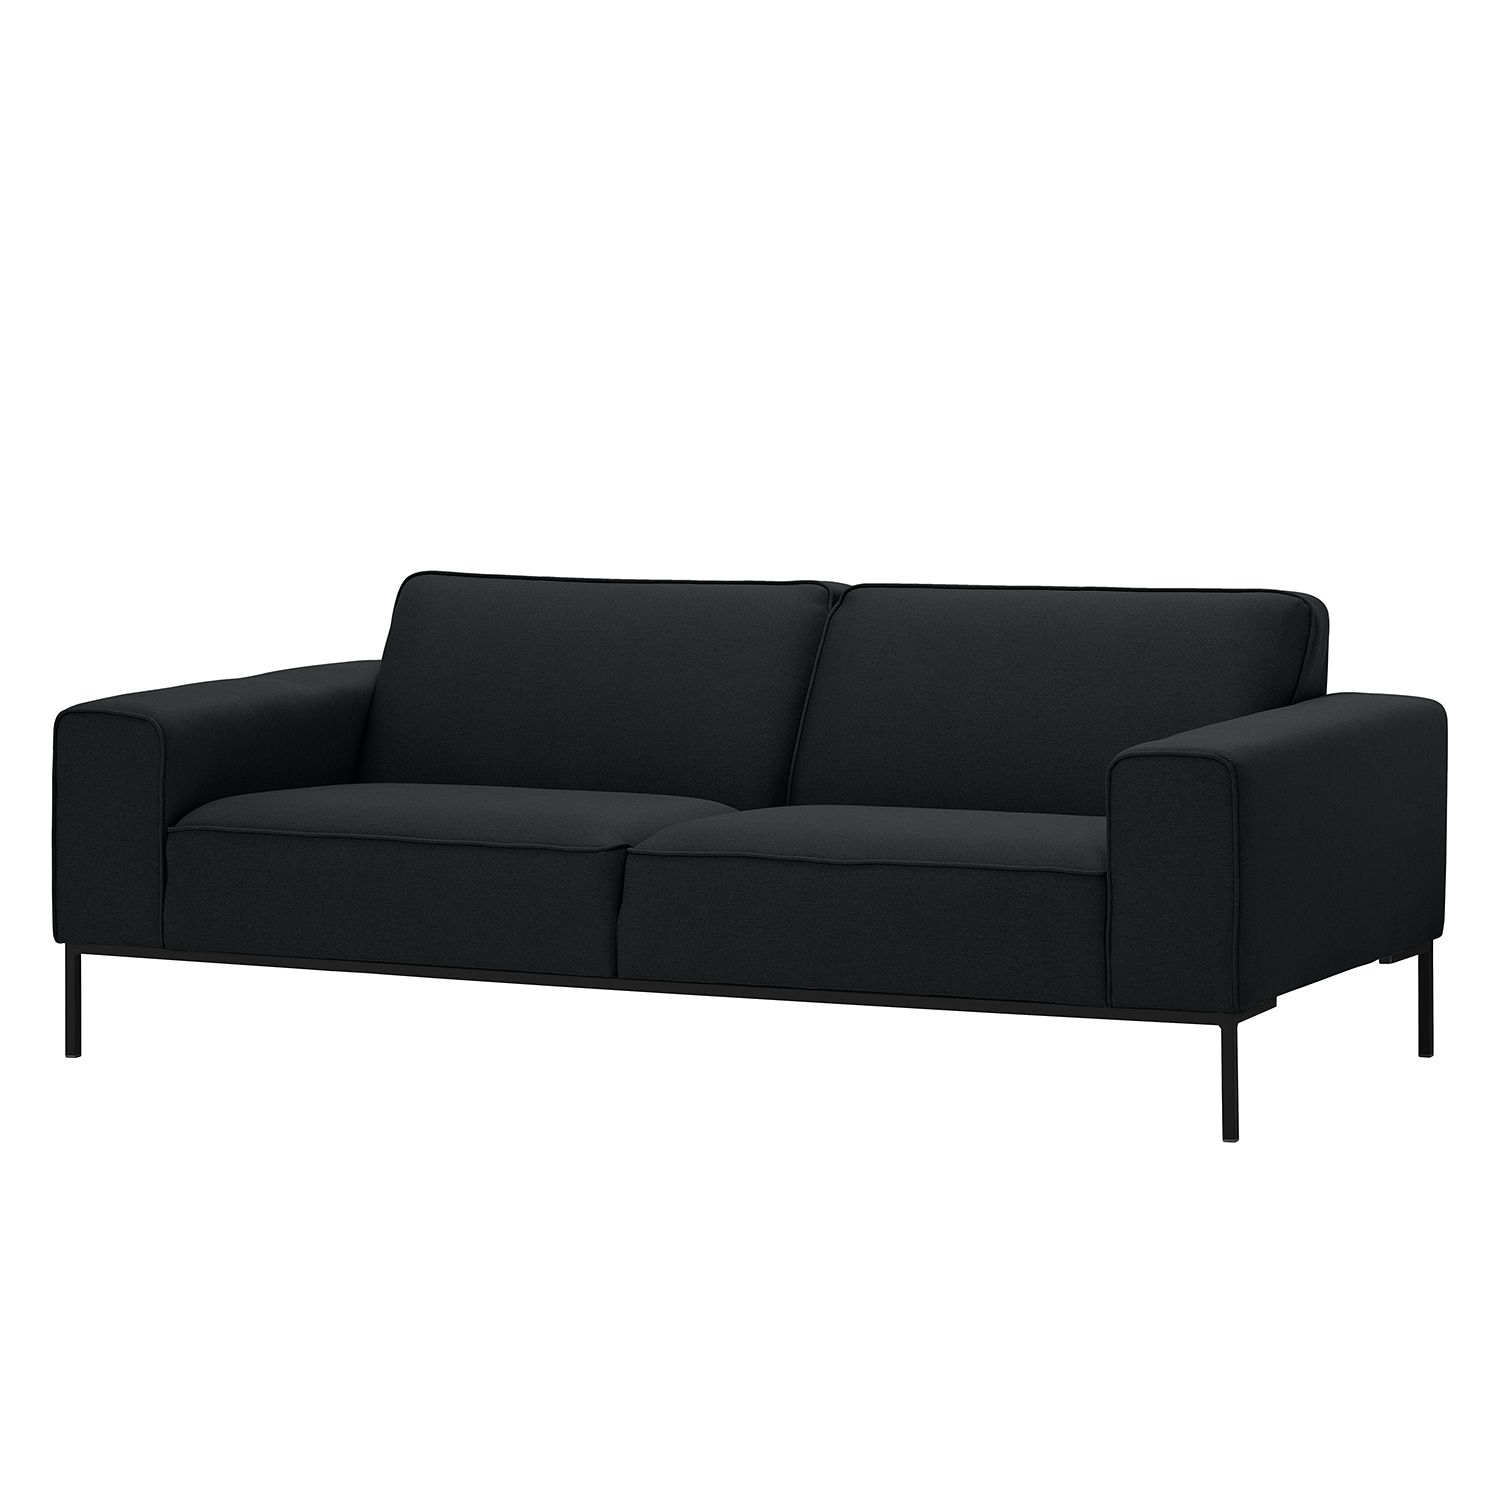 sofa ampio 3 sitzer webstoff schwarz stoff floreana anthrazit studio copenhagen online. Black Bedroom Furniture Sets. Home Design Ideas